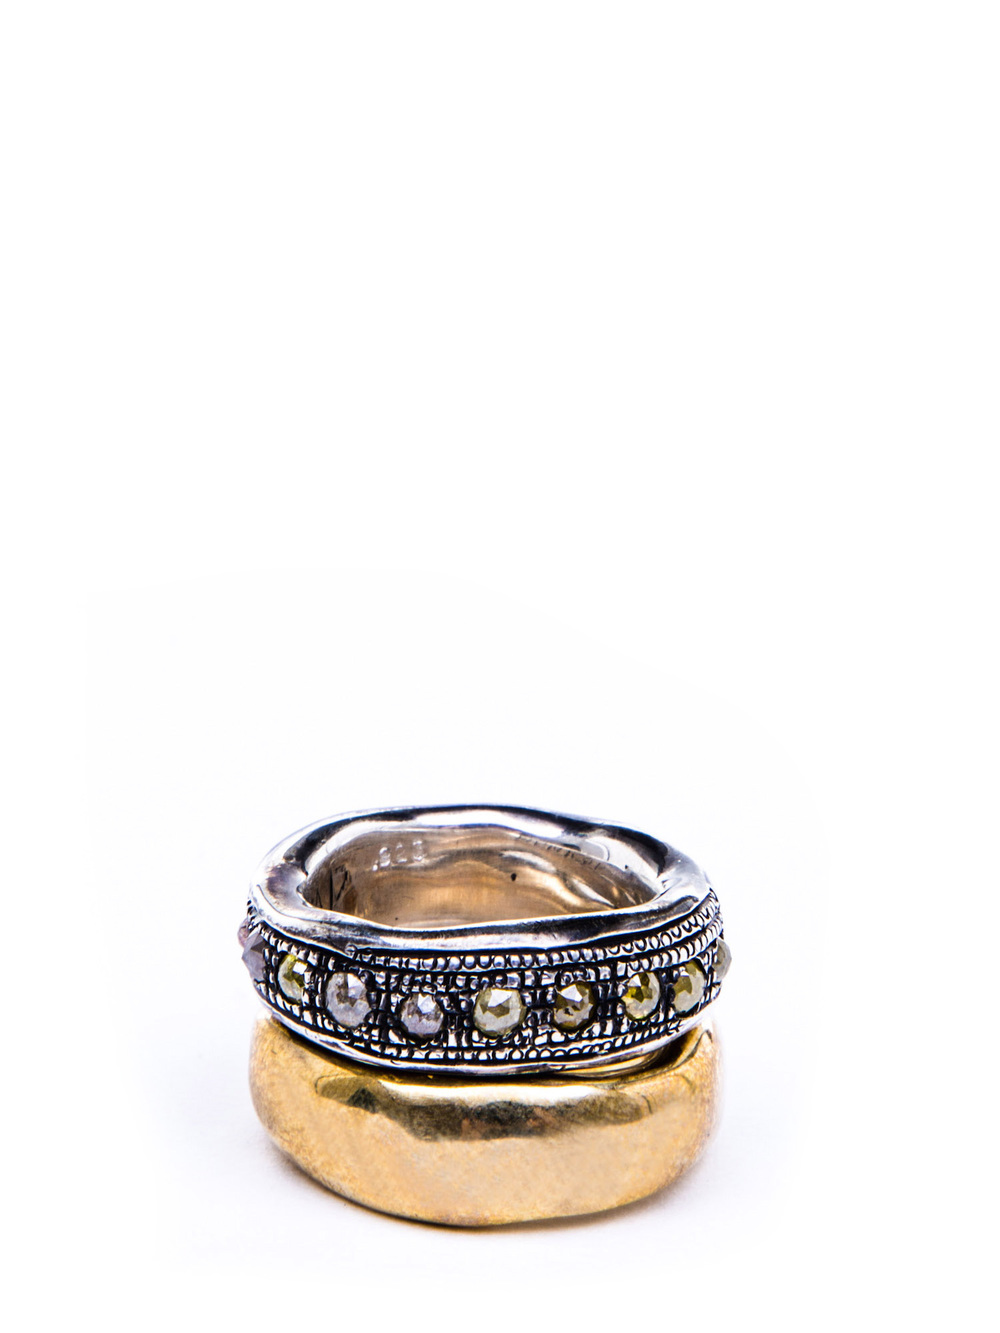 ENKI 2 BAND RING image